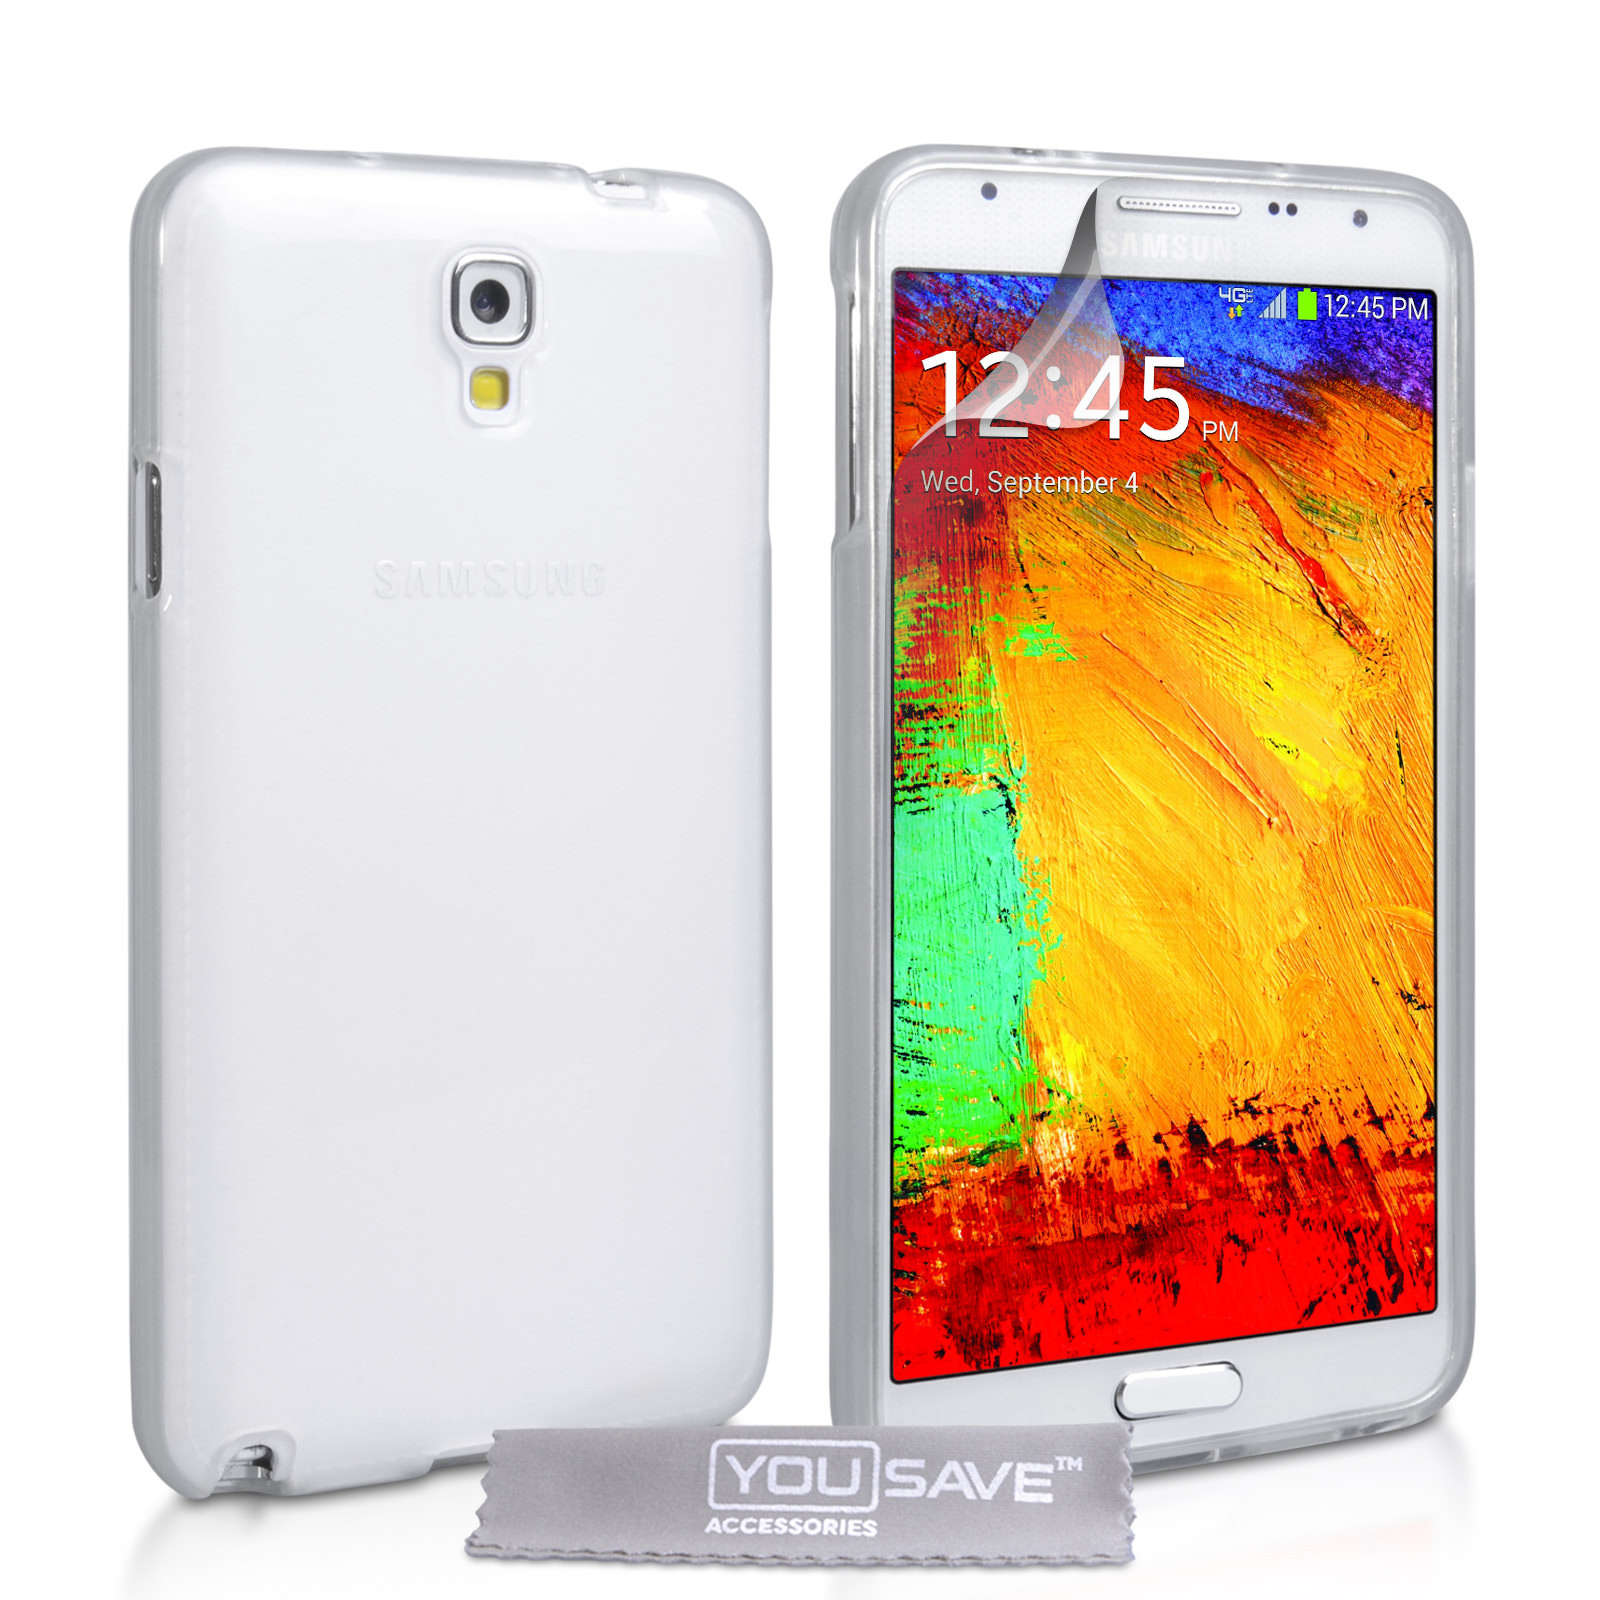 YouSave Samsung Galaxy Note 3 Neo Silicone Gel Case - Clear